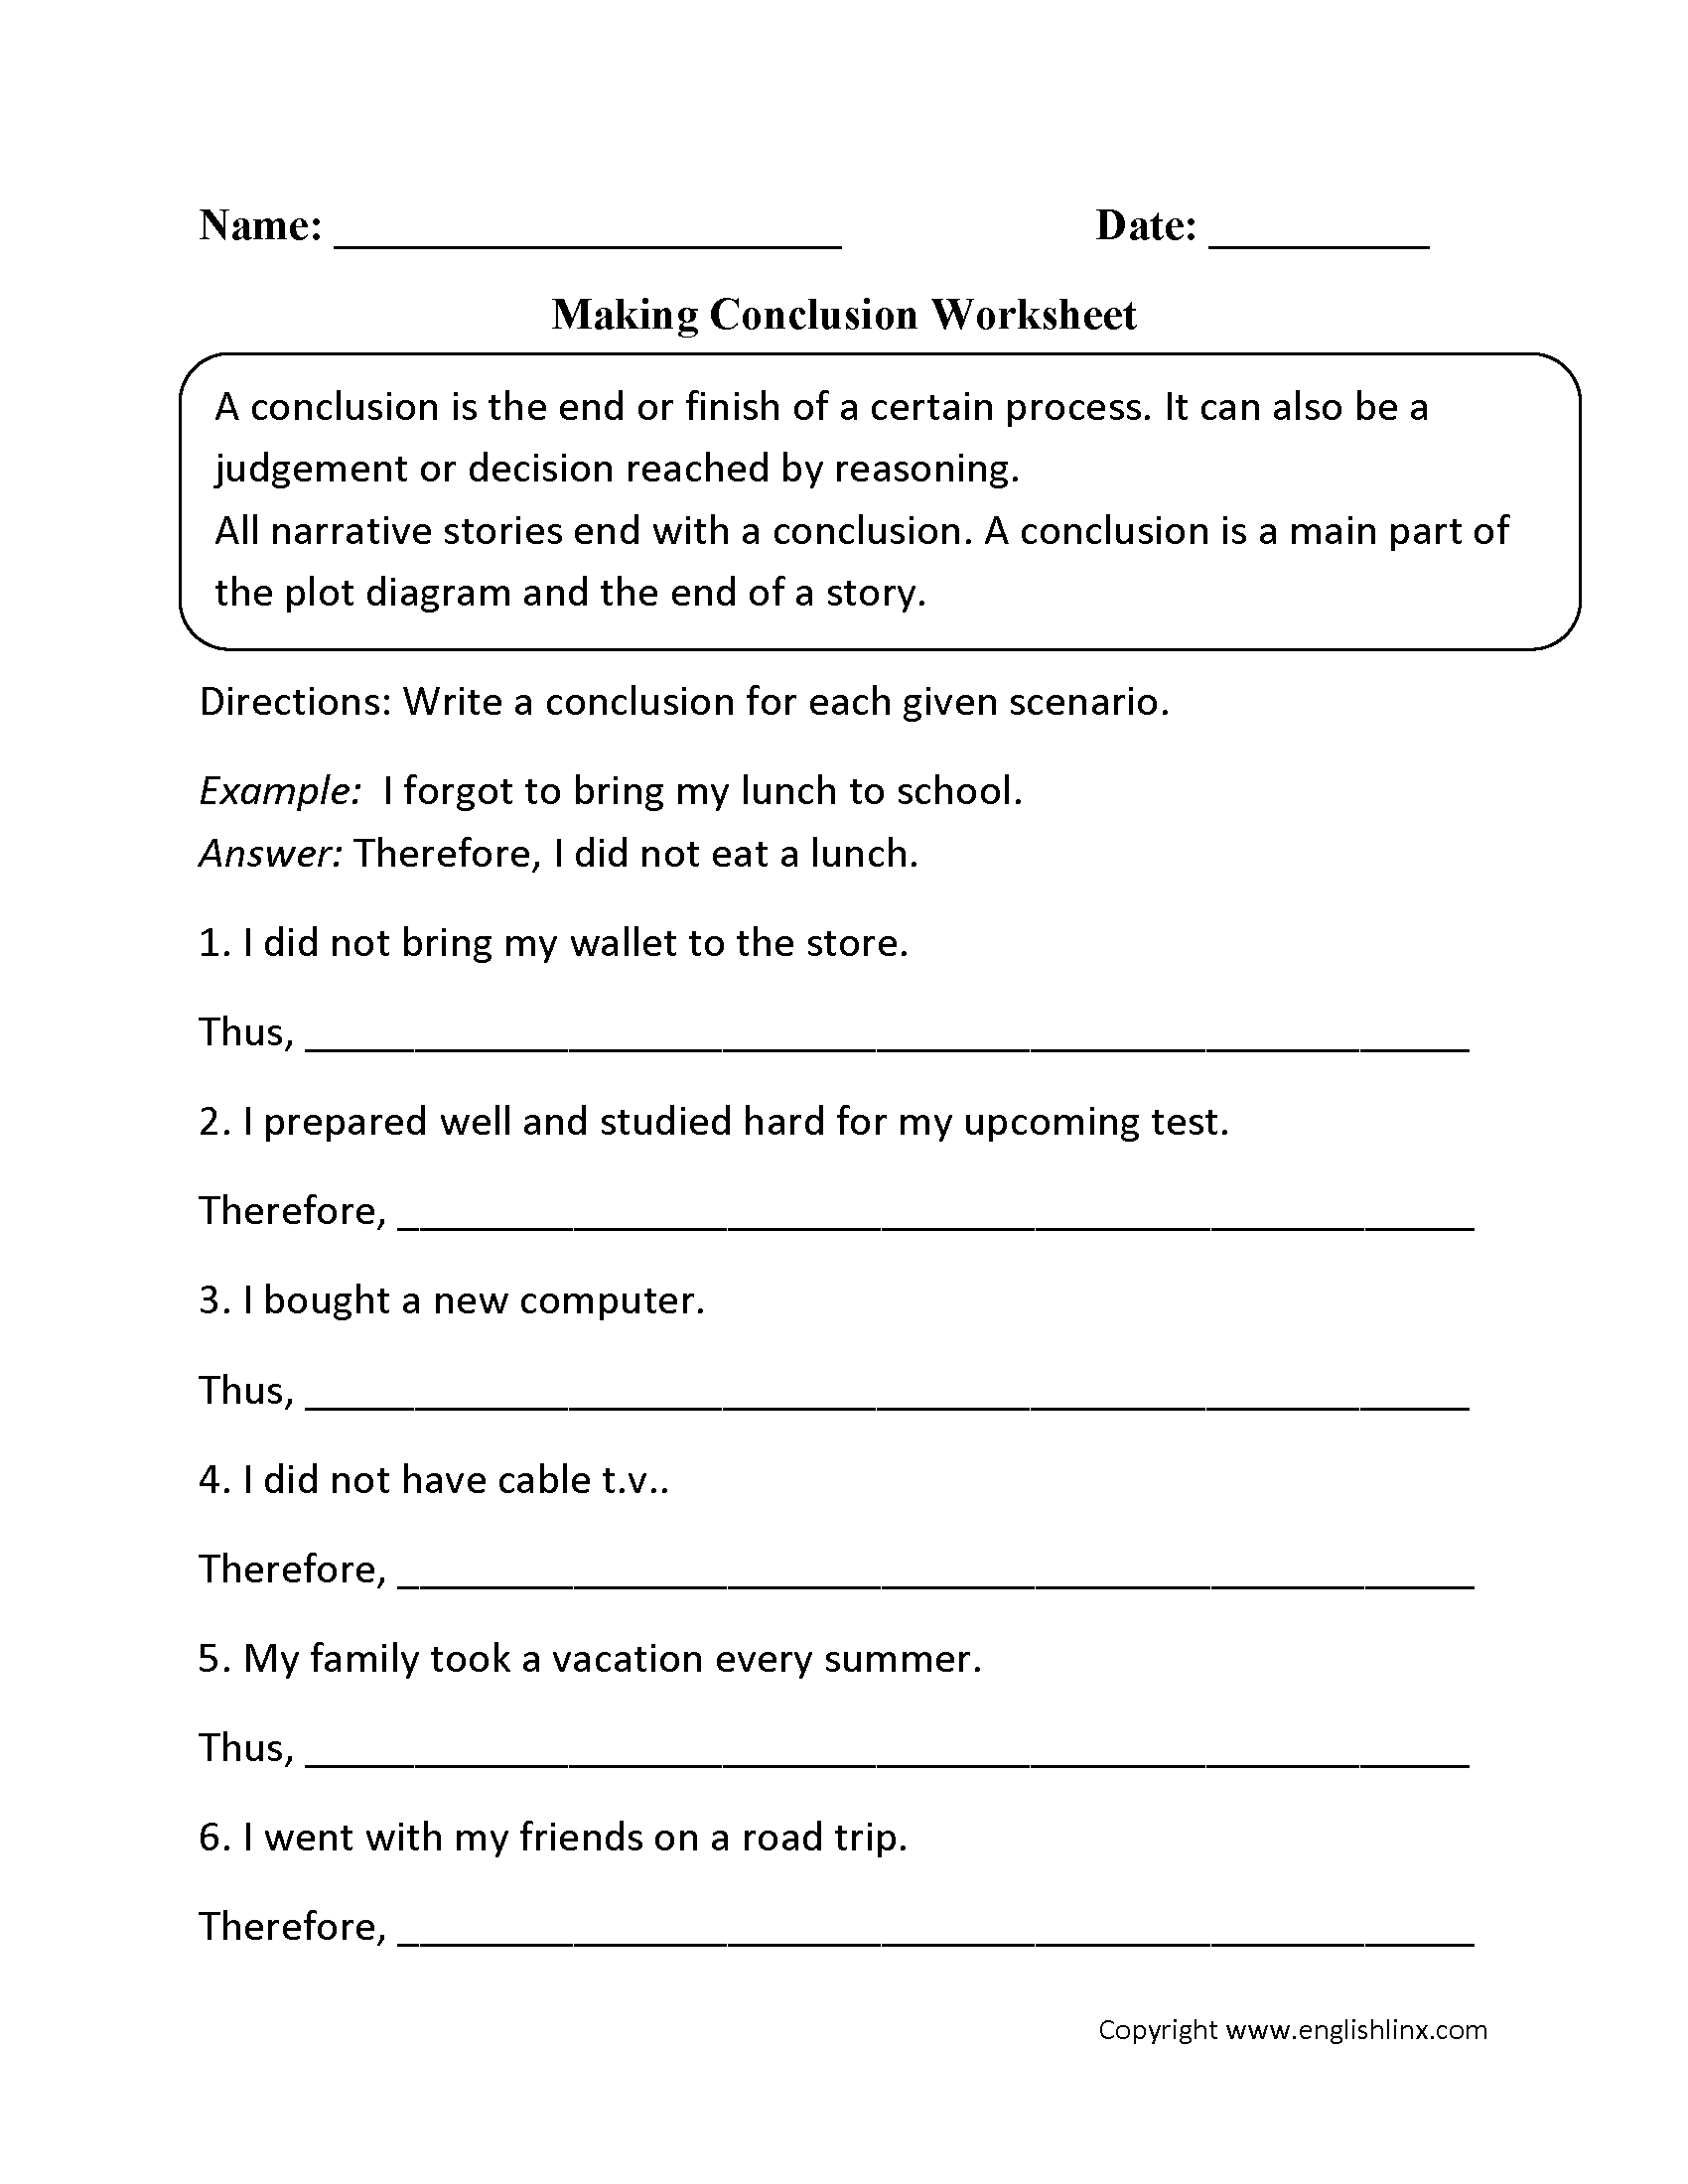 writing conclusions worksheets - Conclusion Of Essay Example